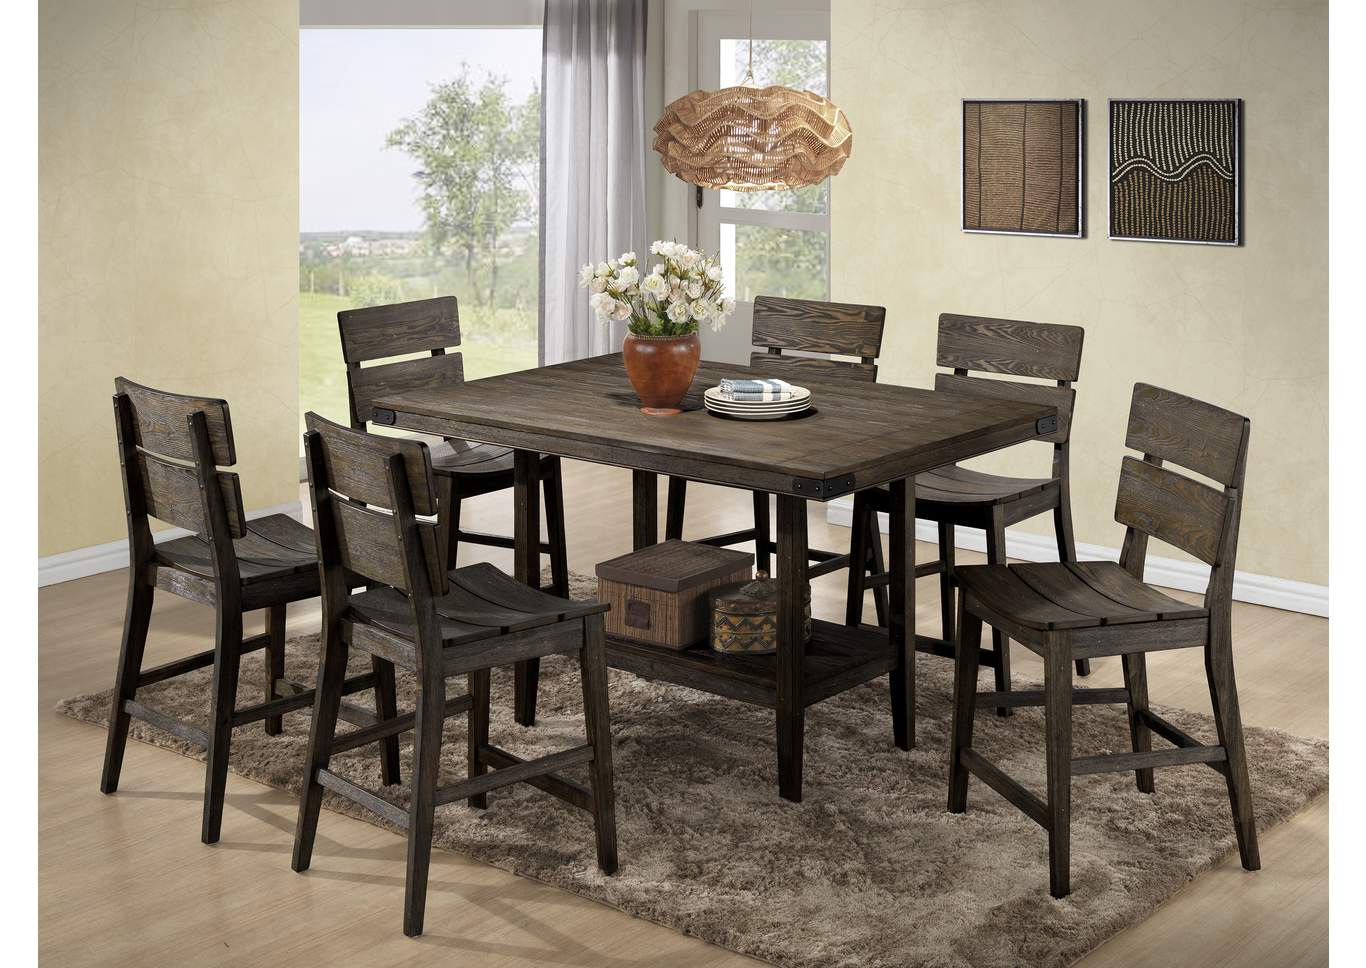 Adams Furniture And Appliance Brandon Counter Height Dinette Table